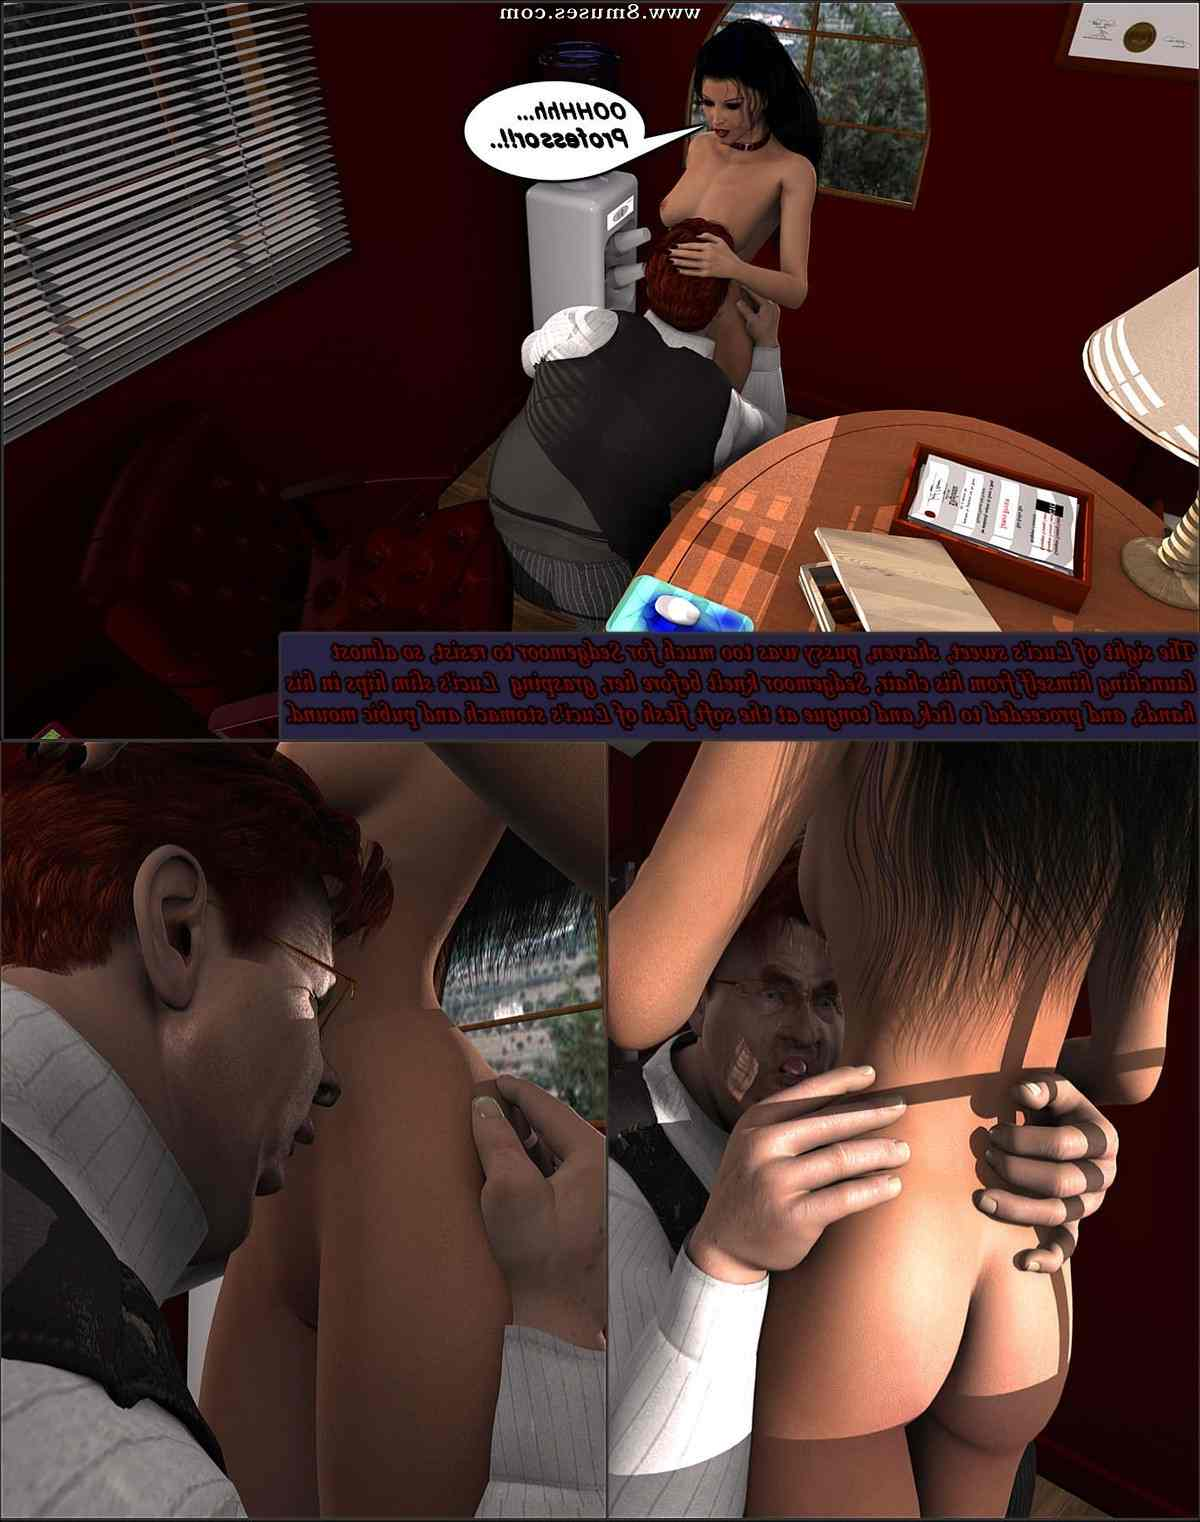 DarkSoul3D-Comics/Monstrous-Tales-Return-To-The-Boardwalk Monstrous_Tales_-_Return_To_The_Boardwalk__8muses_-_Sex_and_Porn_Comics_55.jpg